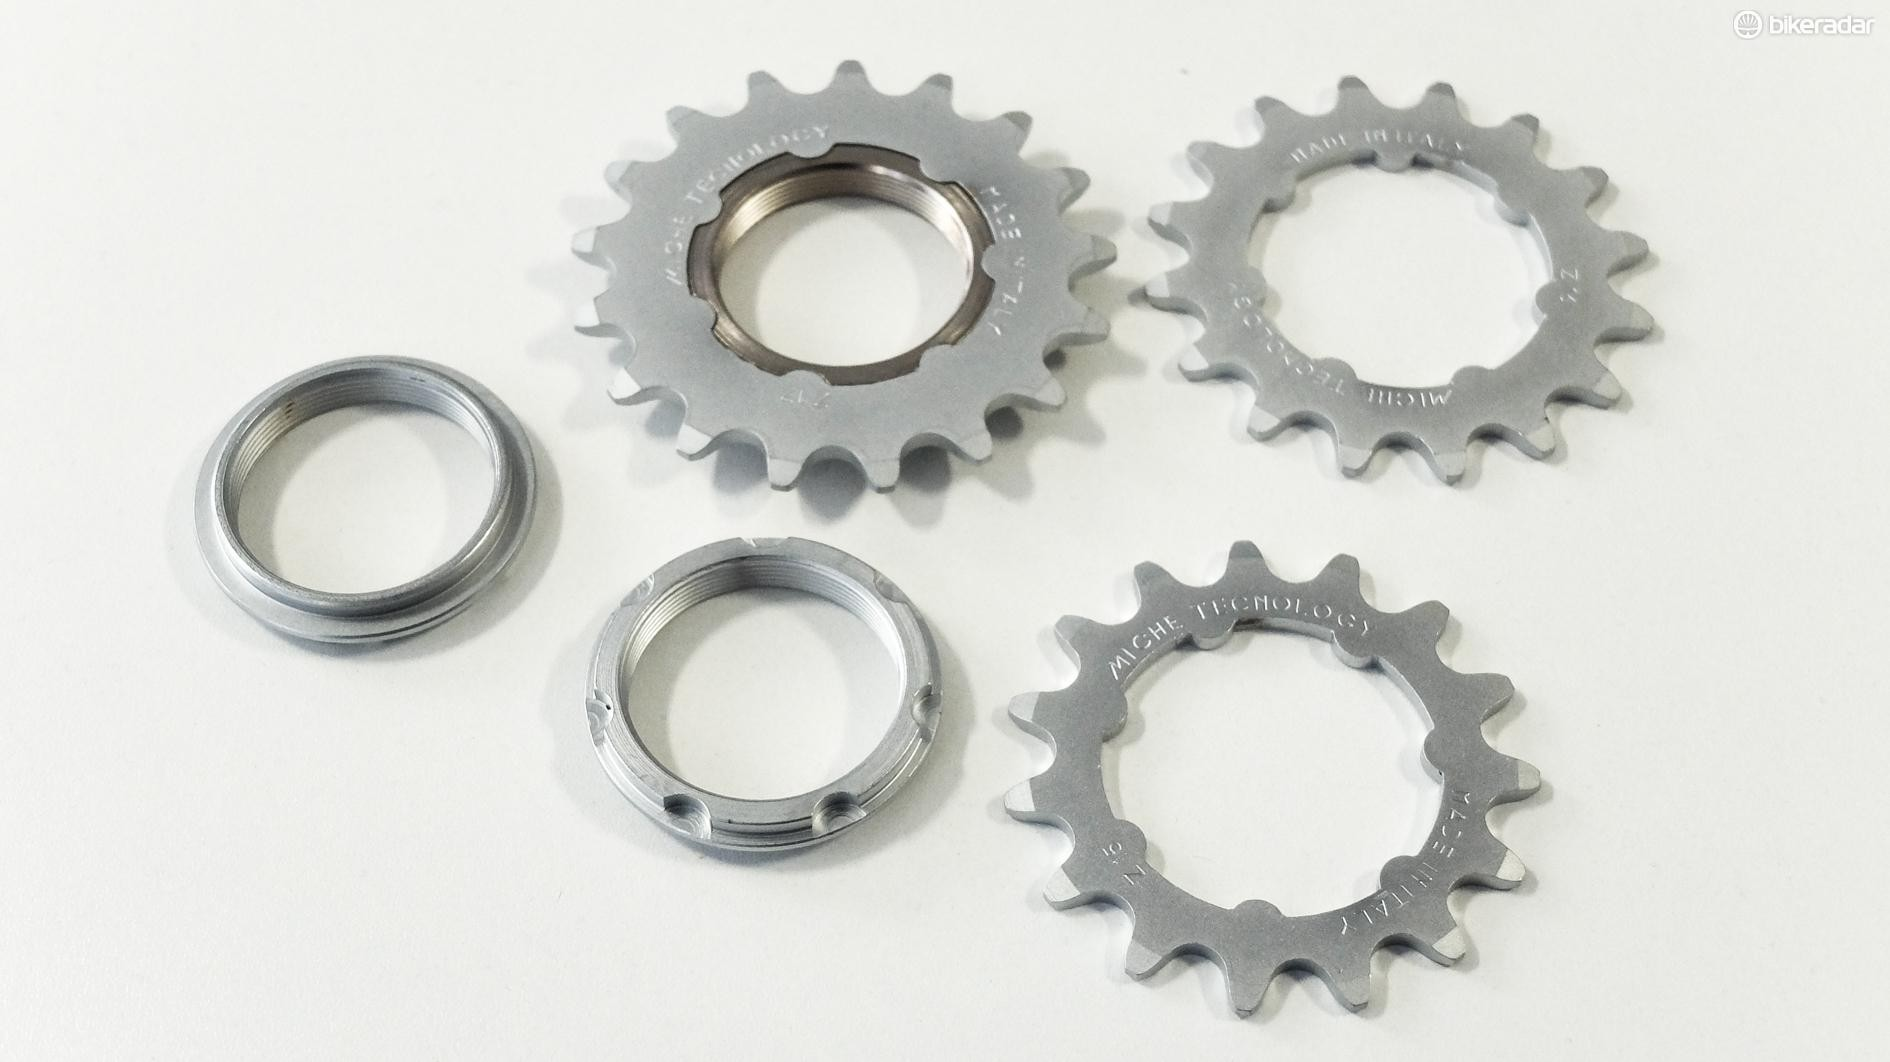 Convenient fixed-gear cogs from Miche